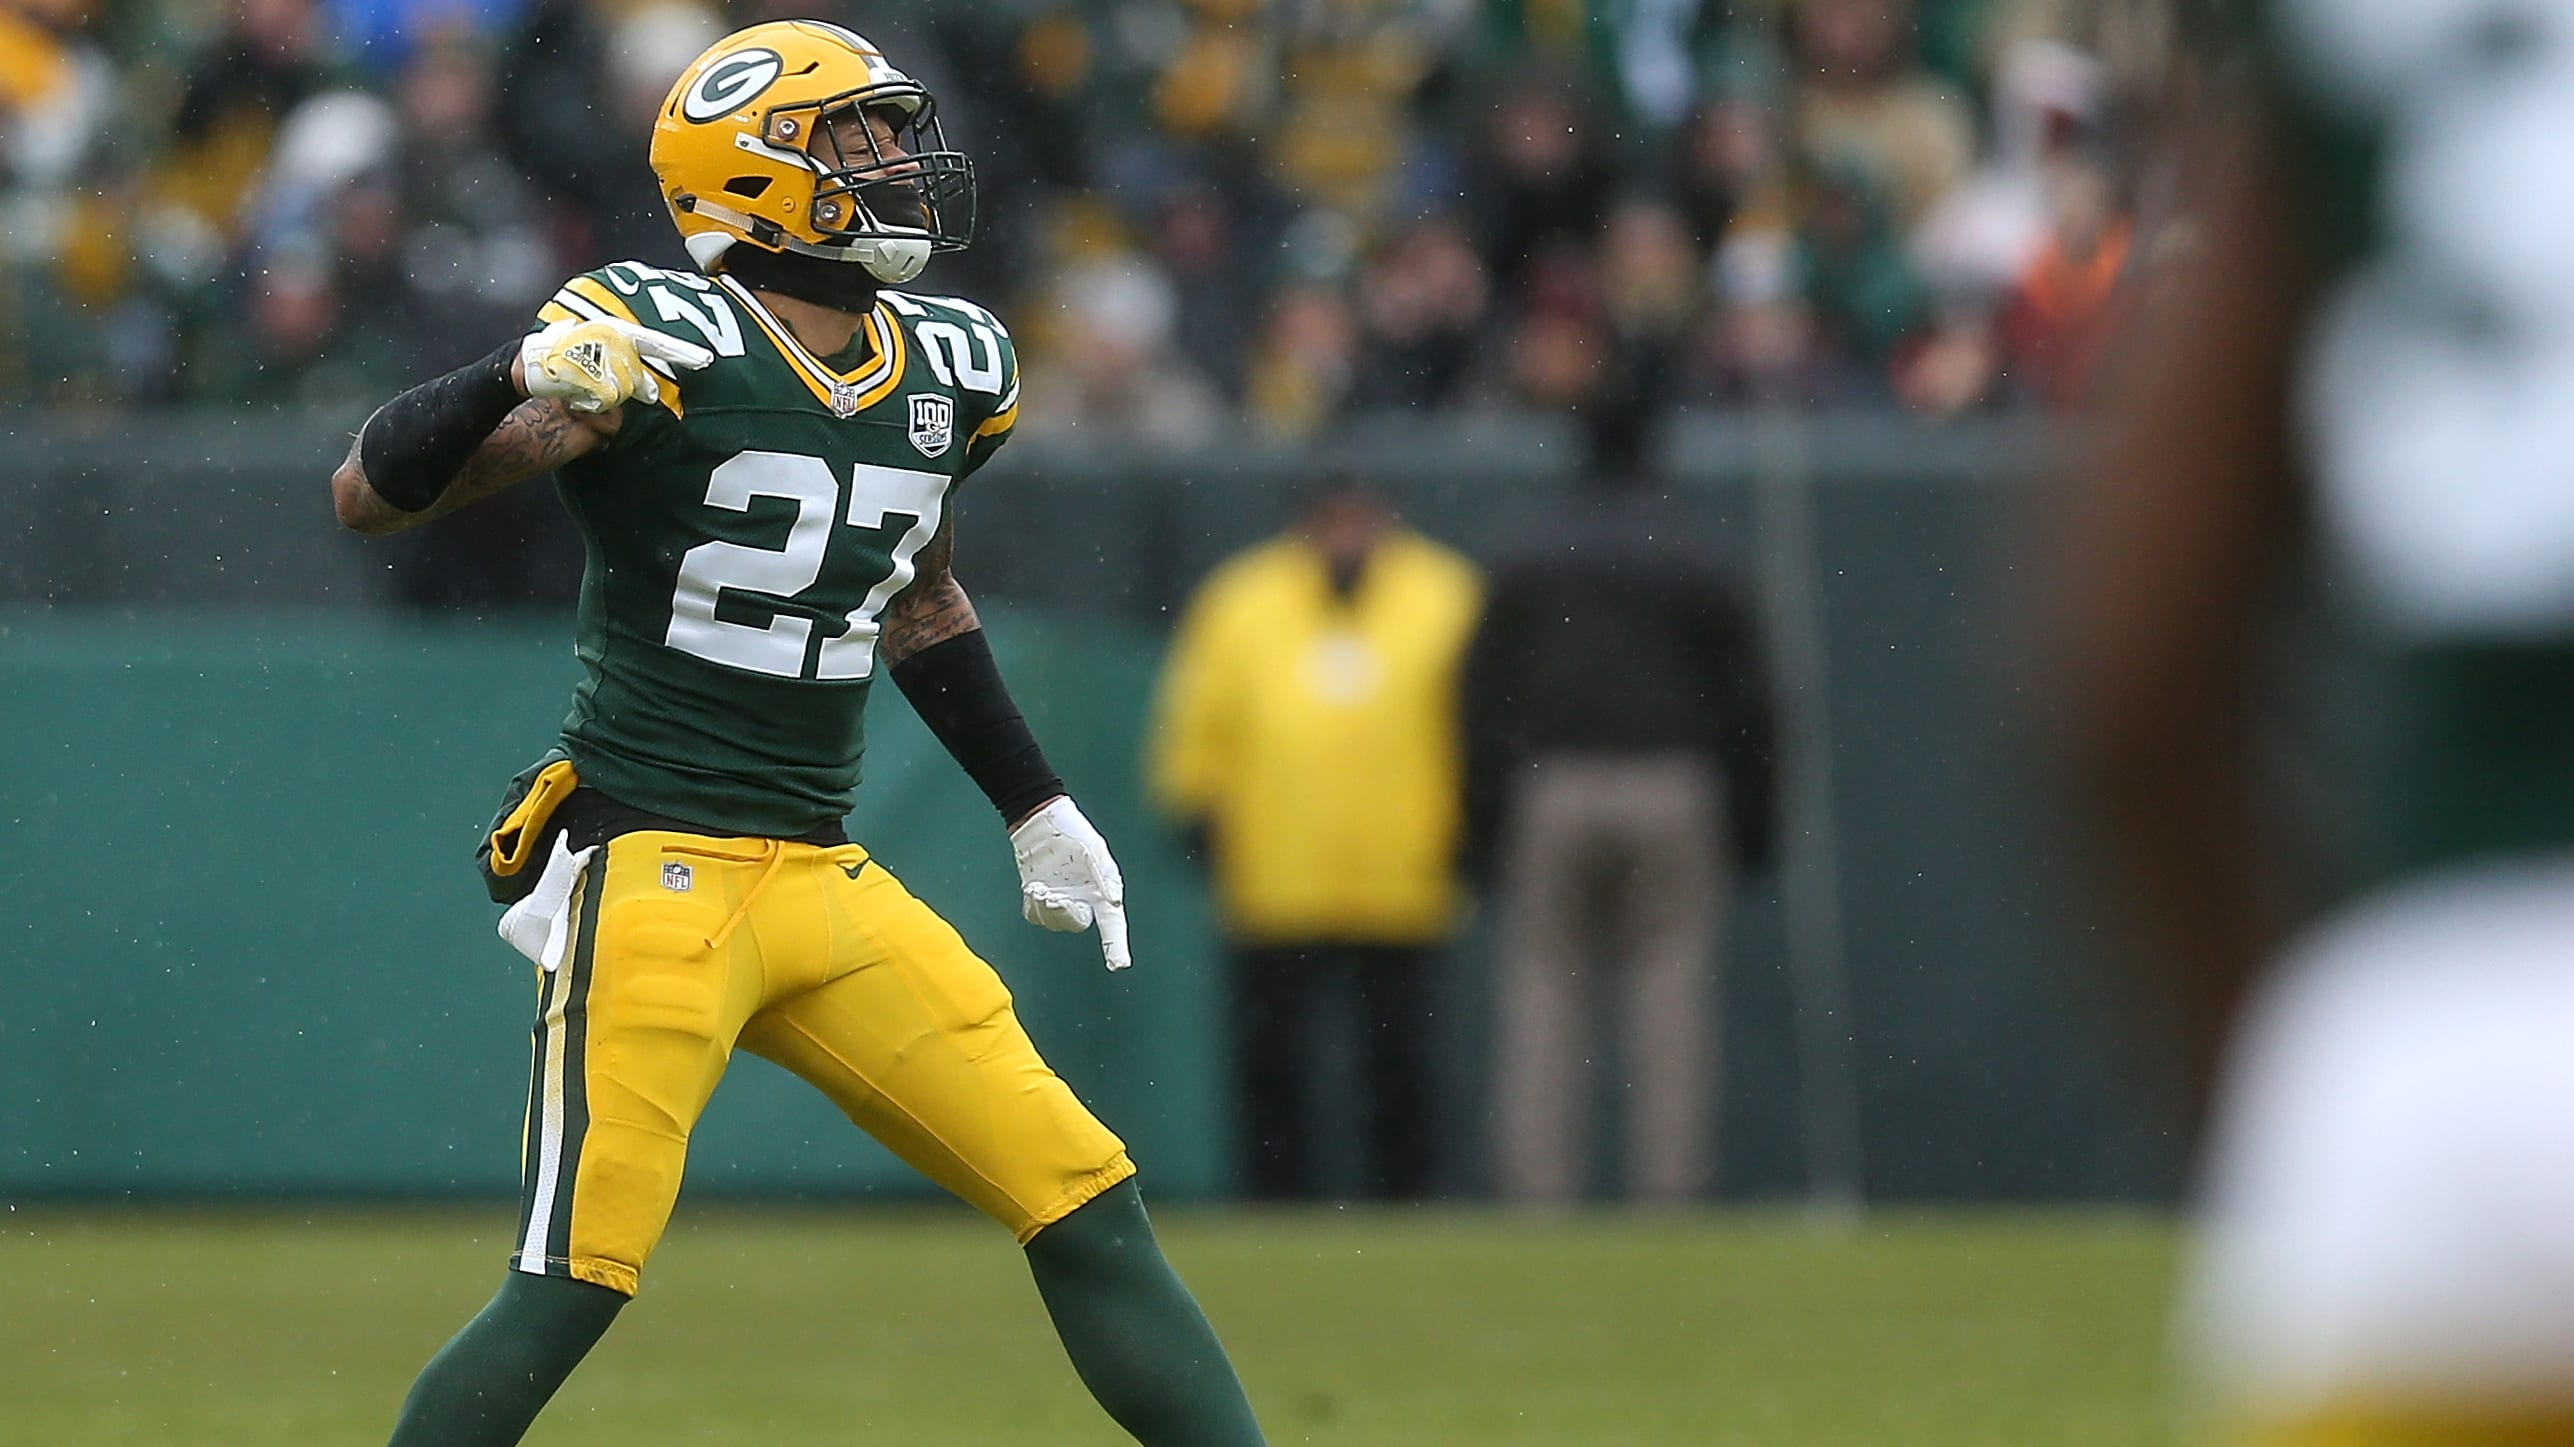 GREEN BAY, WI - DECEMBER 02:  Josh Jones #27 of the Green Bay Packers reacts after recording a sack during the first half of a game against the Arizona Cardinals at Lambeau Field on December 2, 2018 in Green Bay, Wisconsin.  (Photo by Dylan Buell/Getty Images)